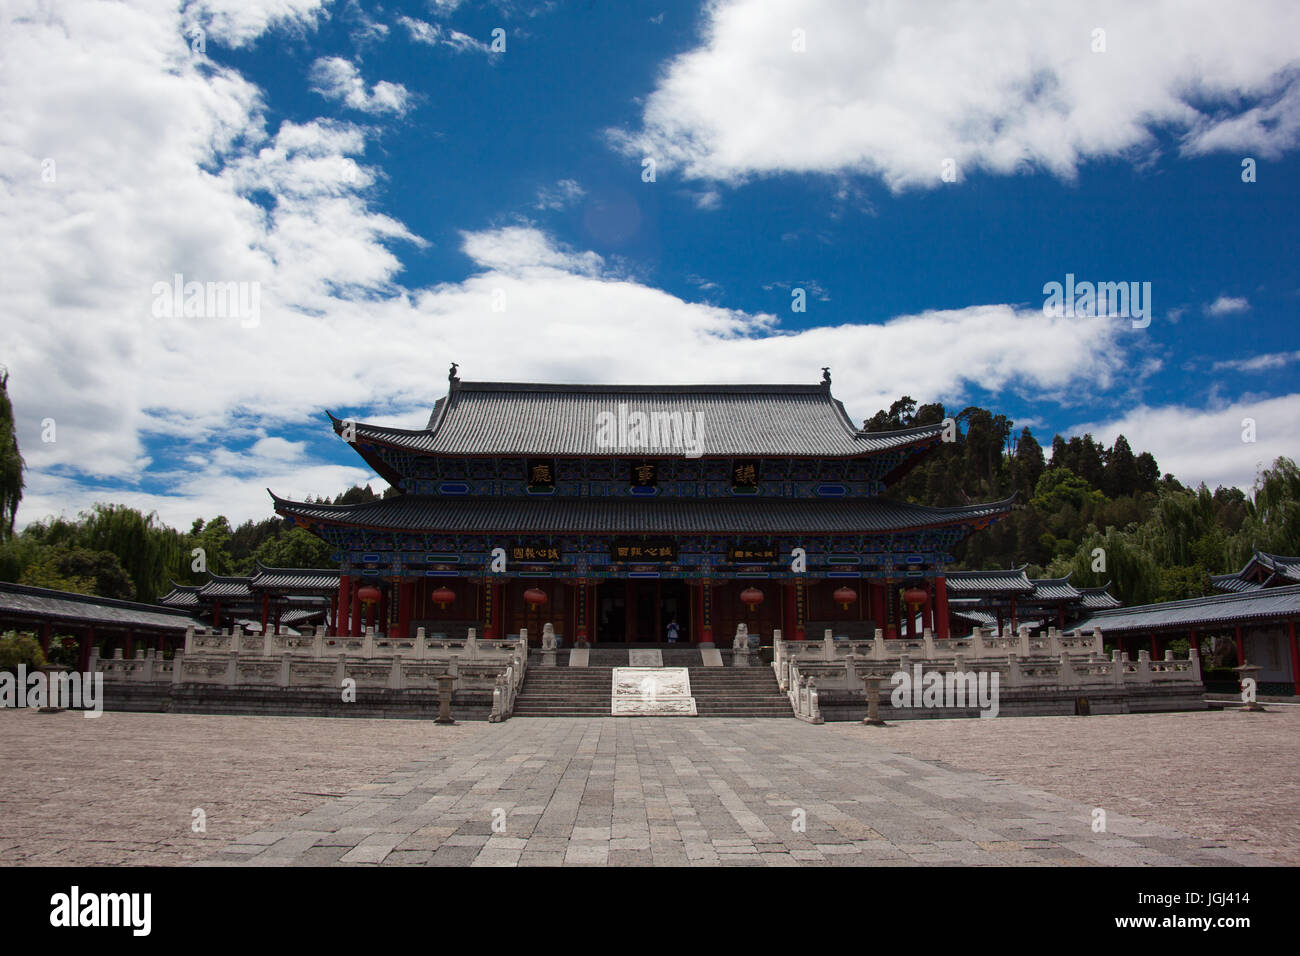 Lijiang, Yunnan, Kunming, China. Heritage village, living and landscapes - Stock Image